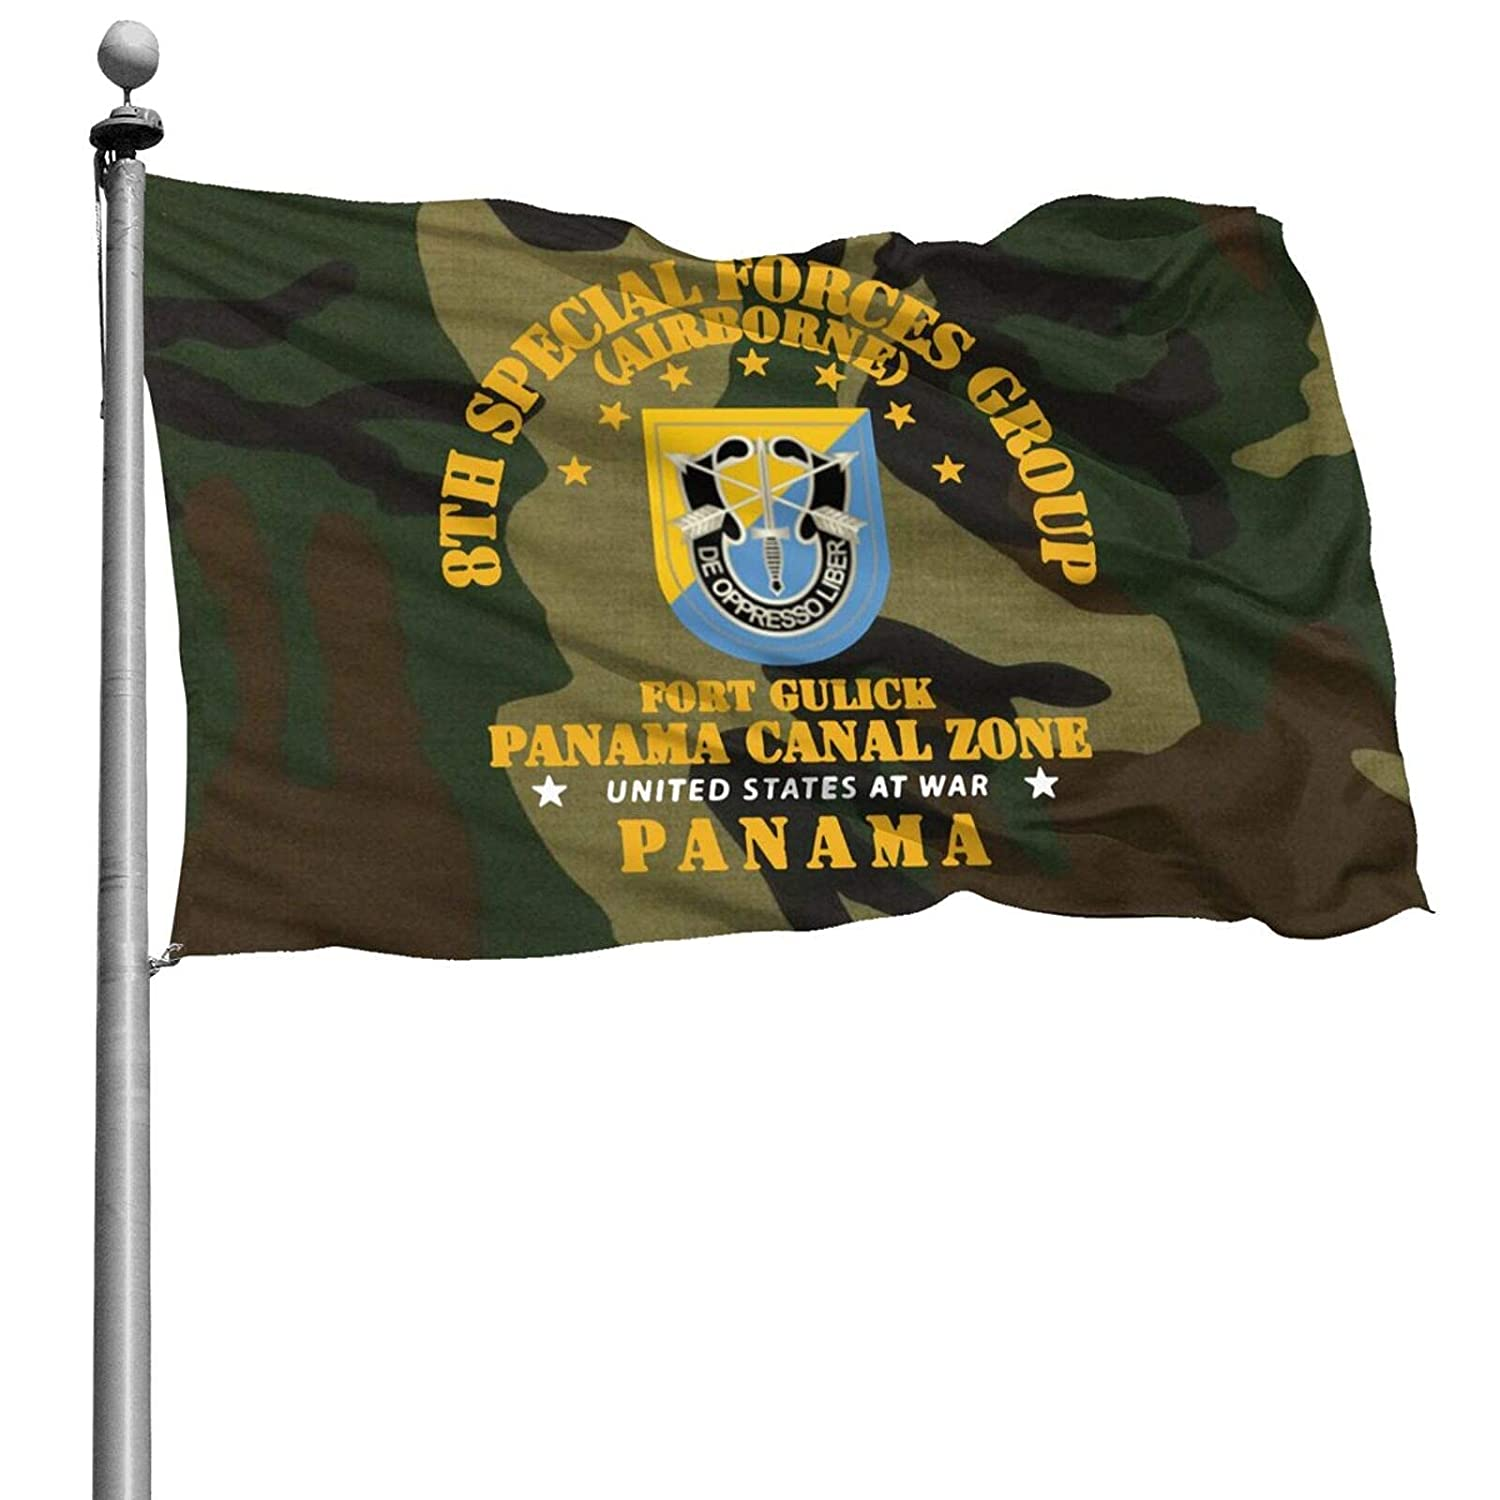 8th Special Forces Group of The United States Army was Established Banner Flags Garden Flag Home House Flags Outdoor Flag USA Flag 4x6 Ft